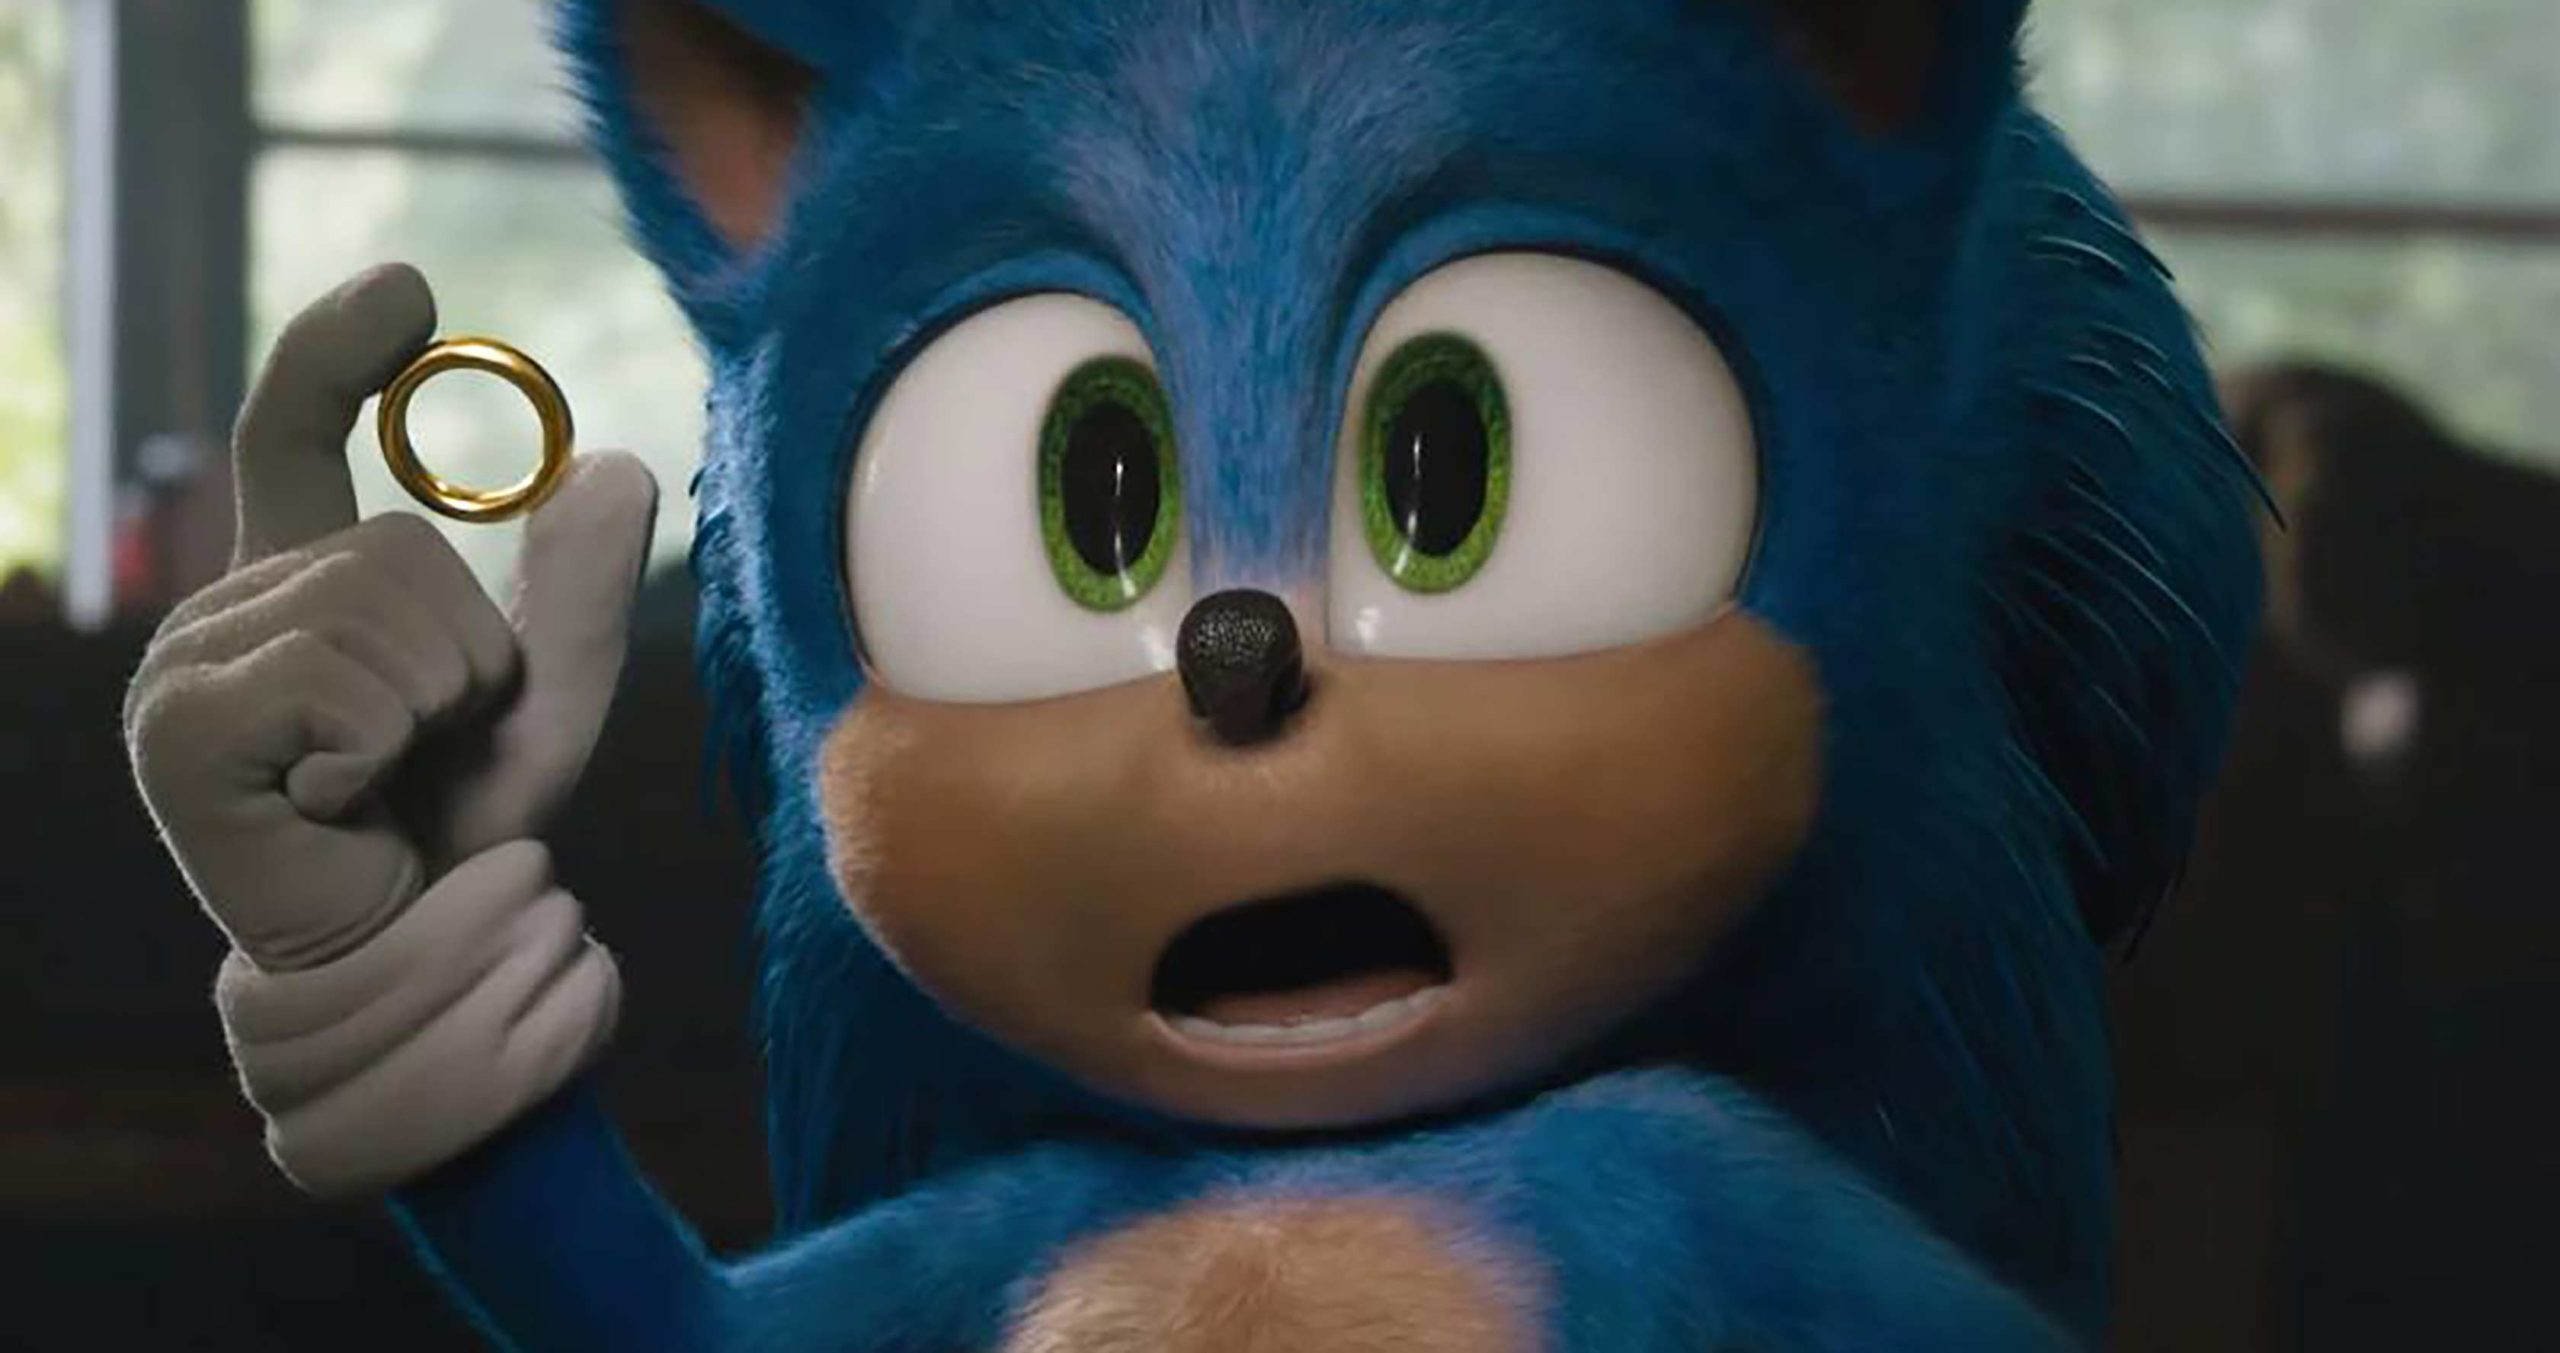 Sonic The Hedgehog Movie Gets Early Digital Release Due To Covid 19